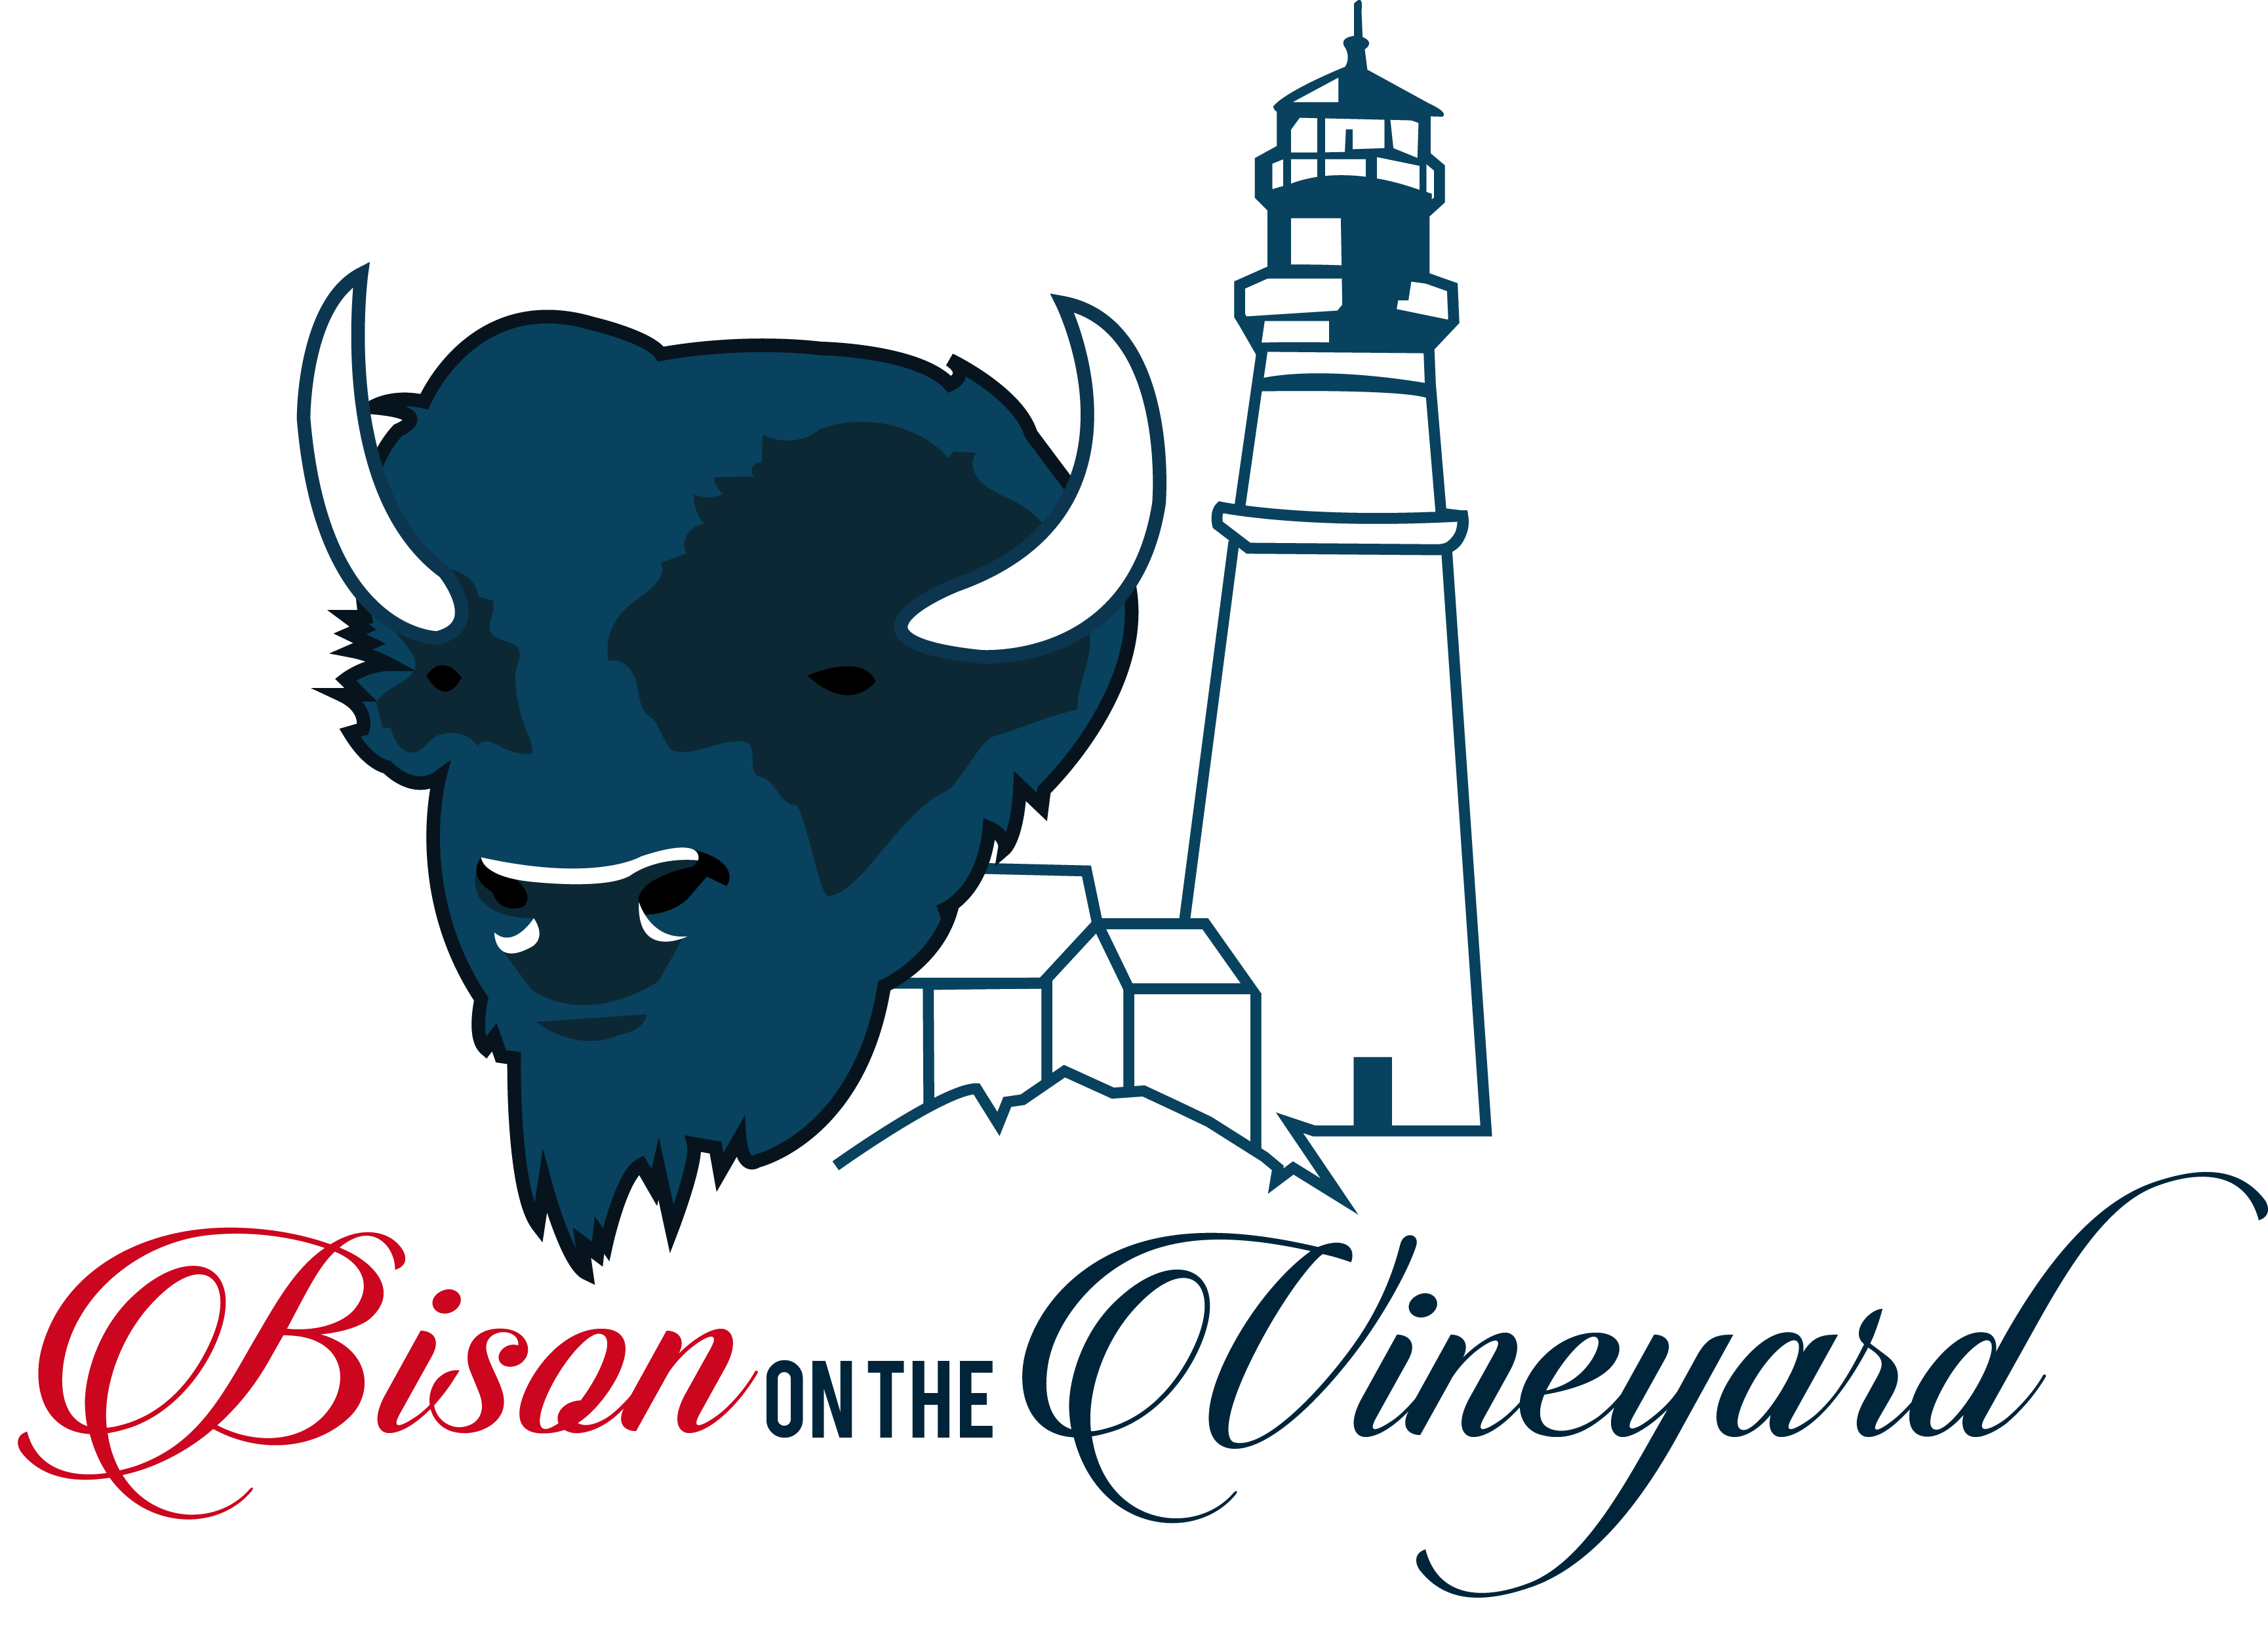 th annual bison. Freedom clipart juneteenth